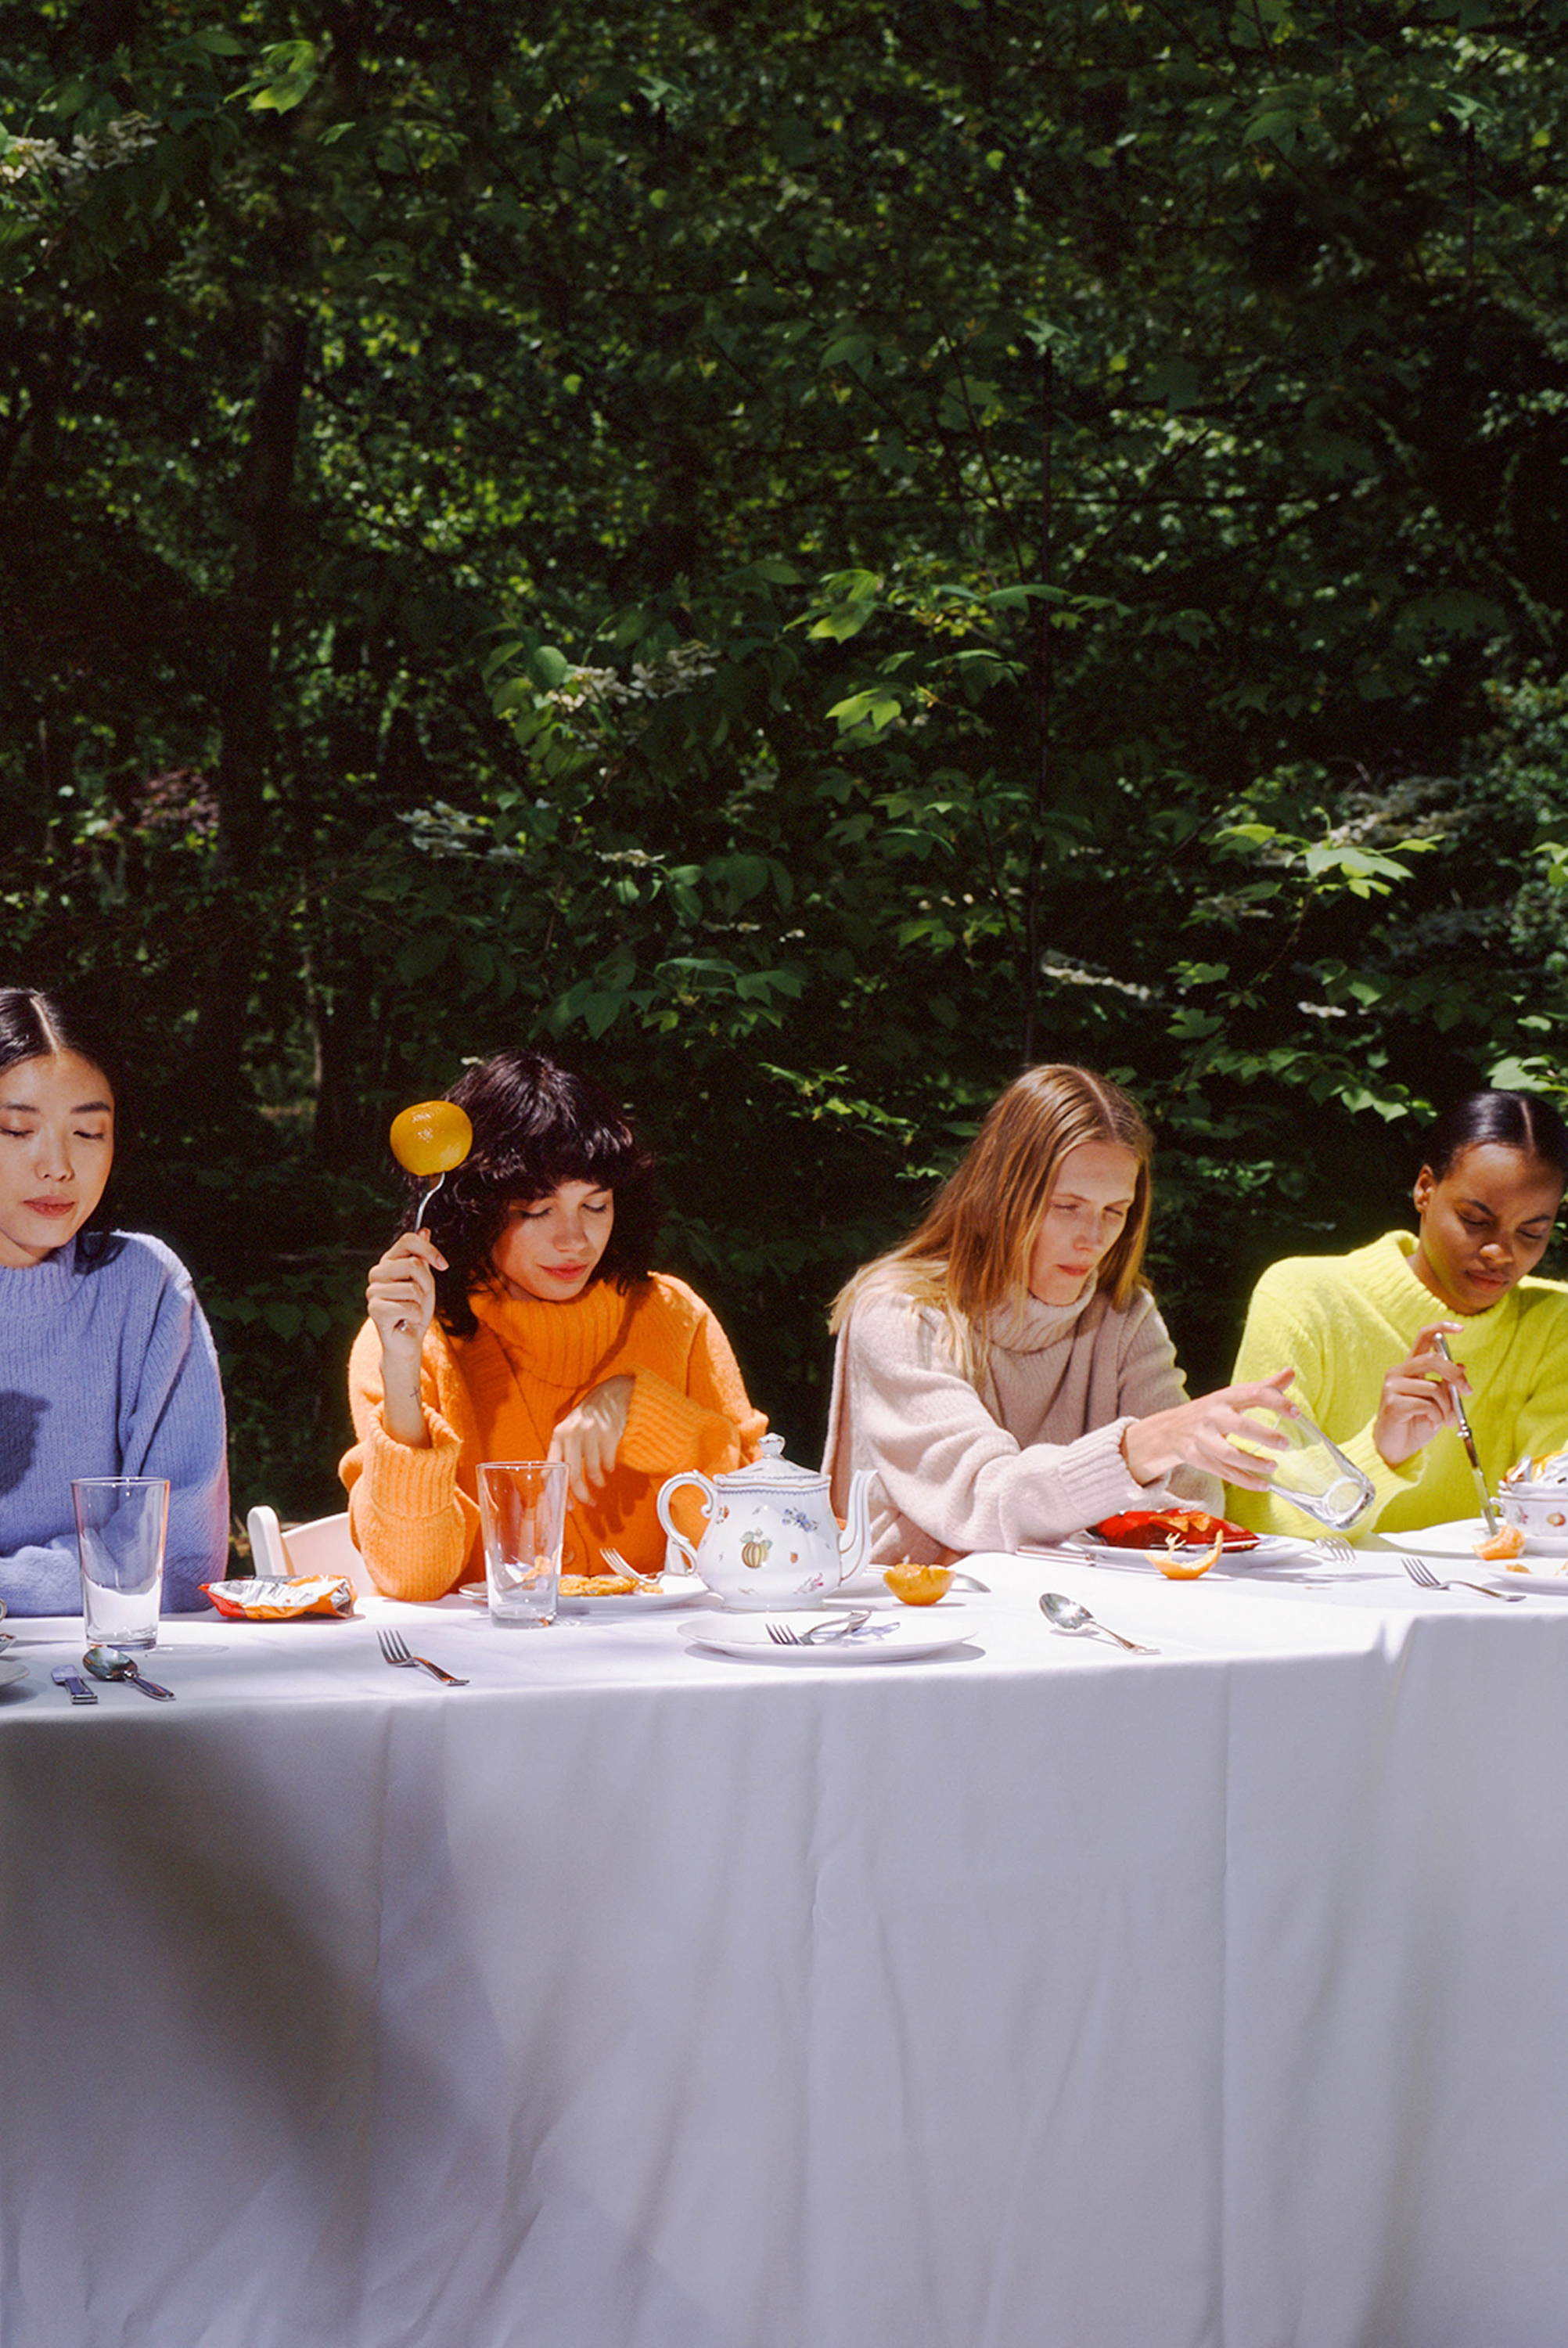 Models lined up sitting at table. All wearing sweaters and eating a mix of snack like apples, chips and oranges.